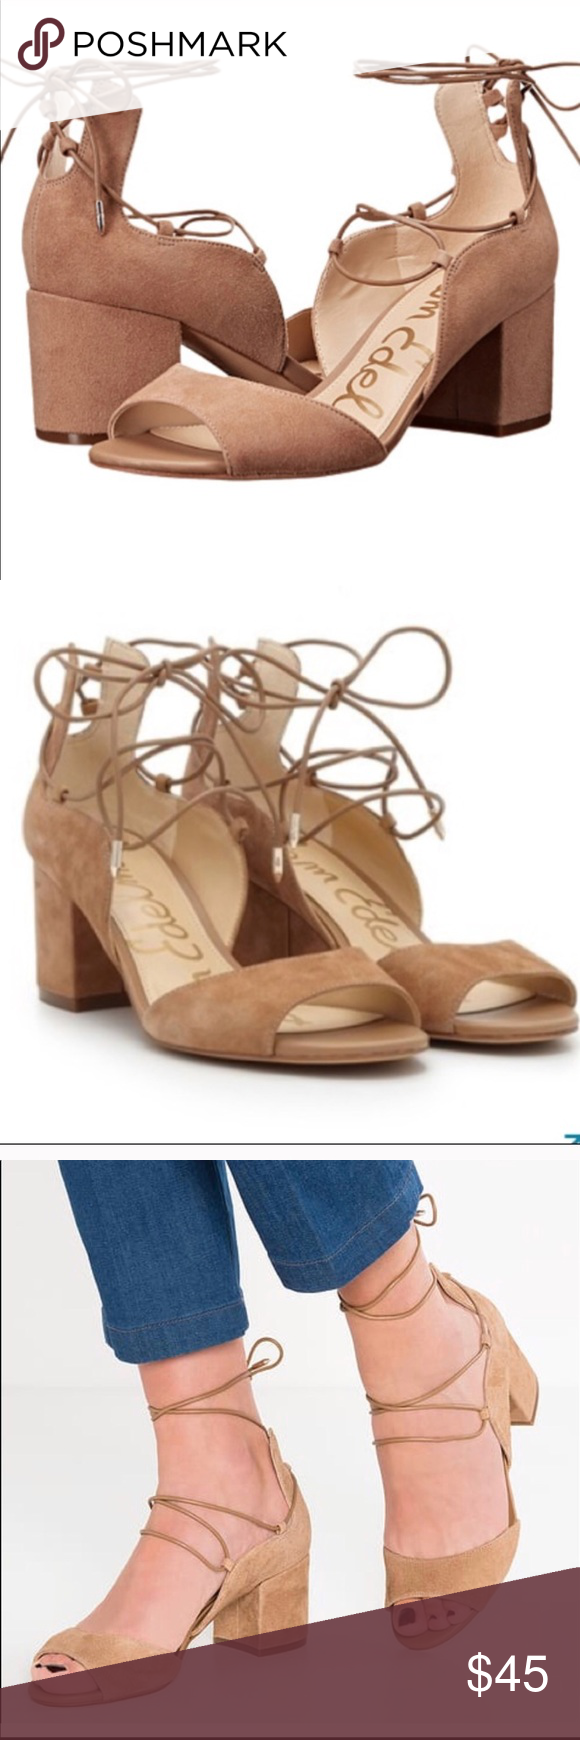 2880845ef3d89 Sam Edelman Serene Dress Sandal Sam Edelman Serene Dress Sandal In Golden  Caramel Suede. New